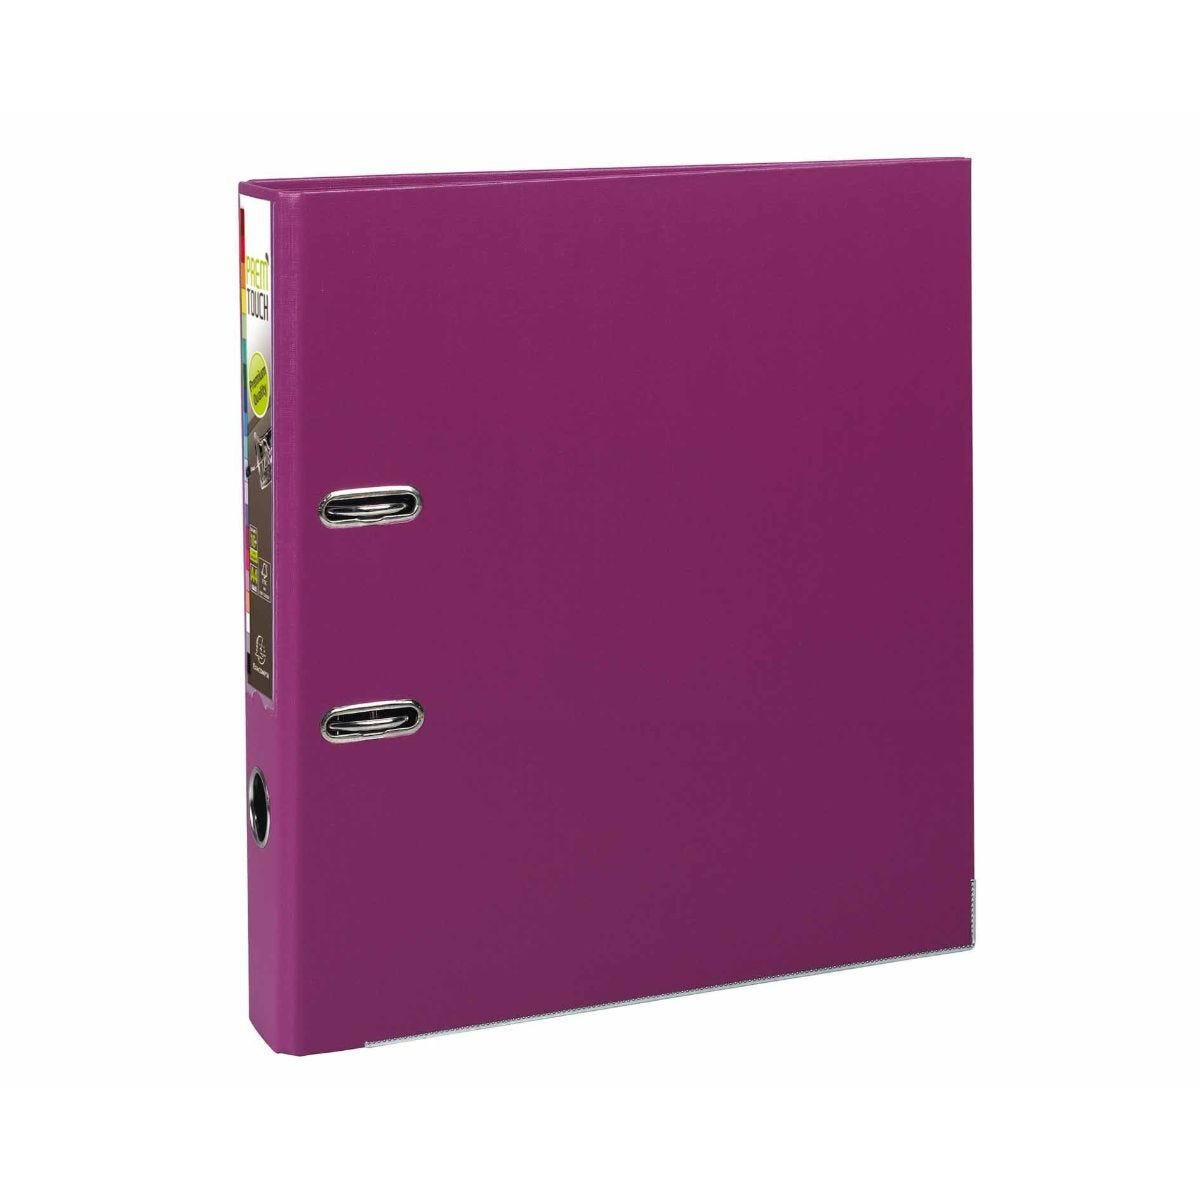 Exacompta PremTouch A4 Plus Lever Arch File 50mm Pack of 10 Fuchsia